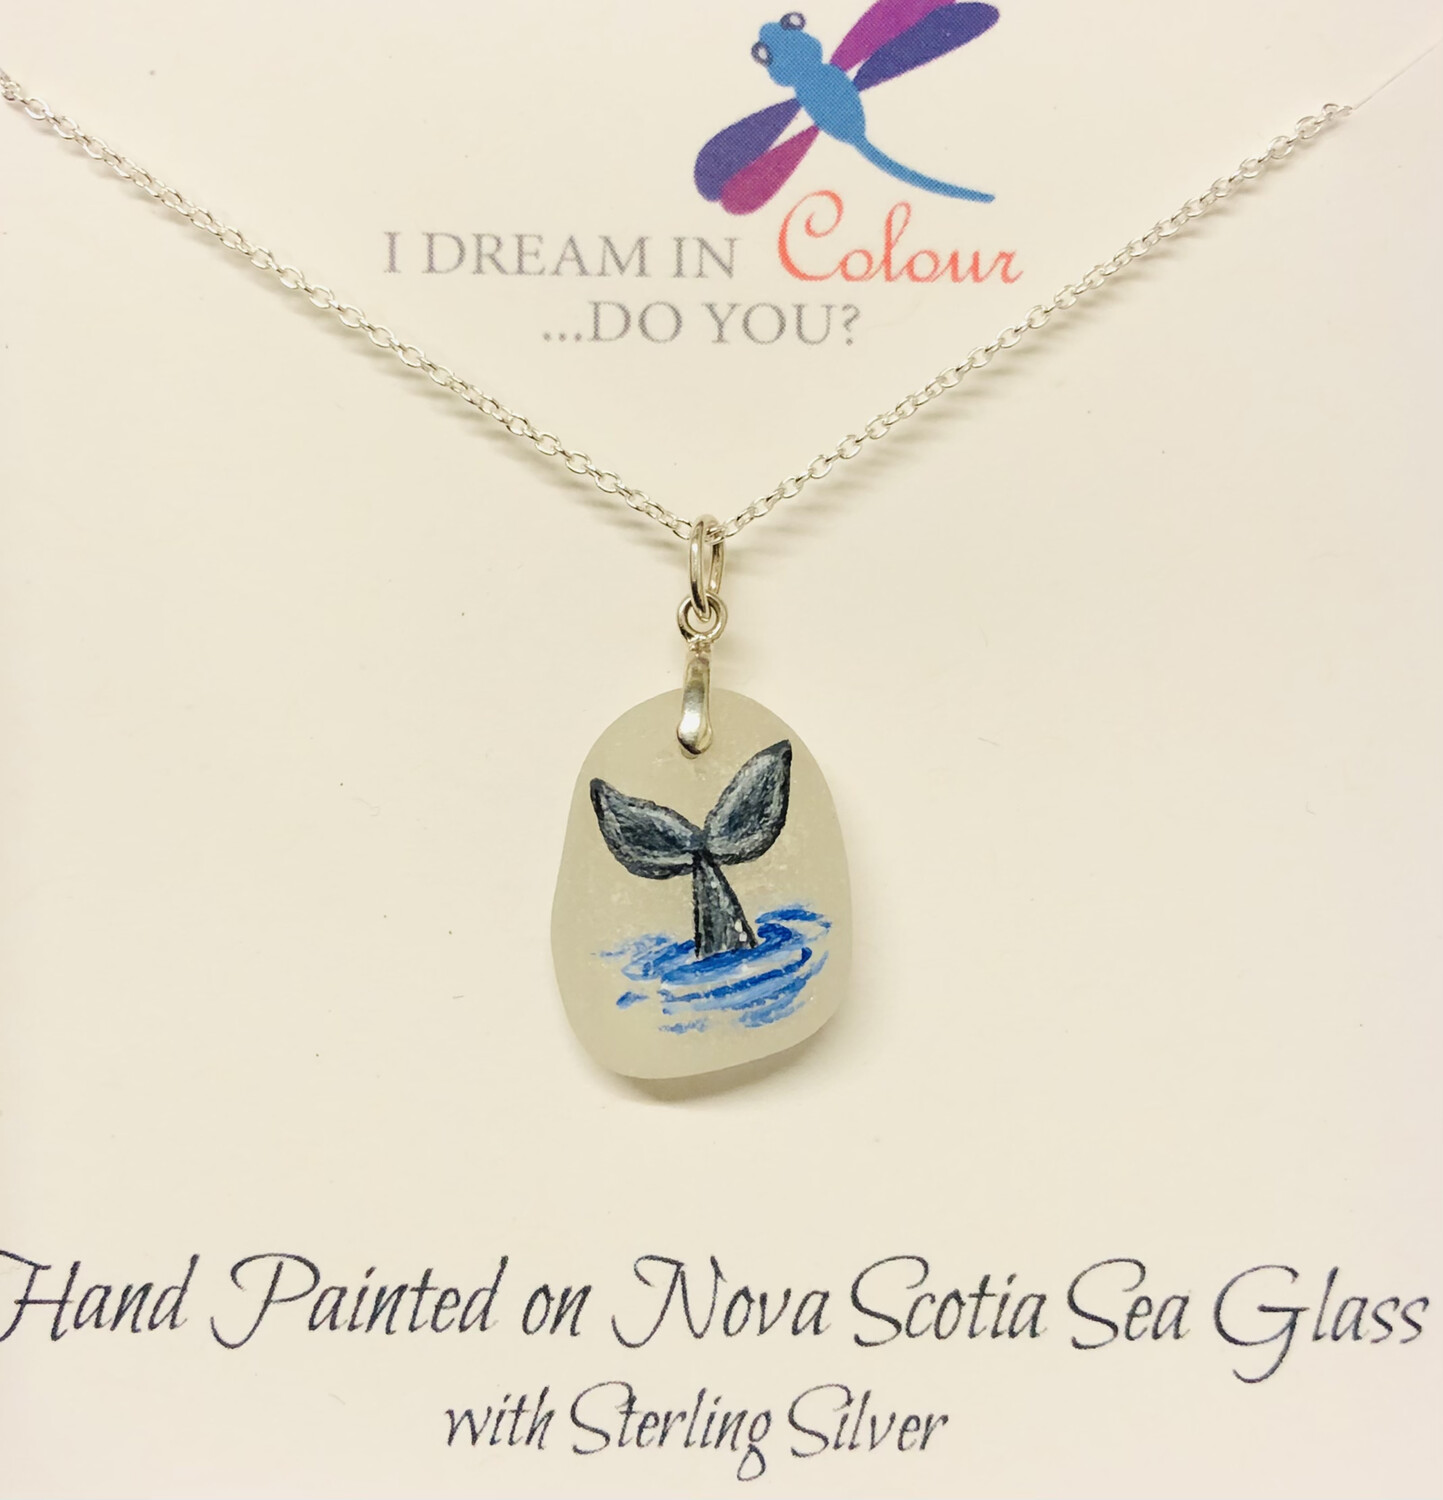 Painted Sea Glass, Whale Tail - I Dream in Colour